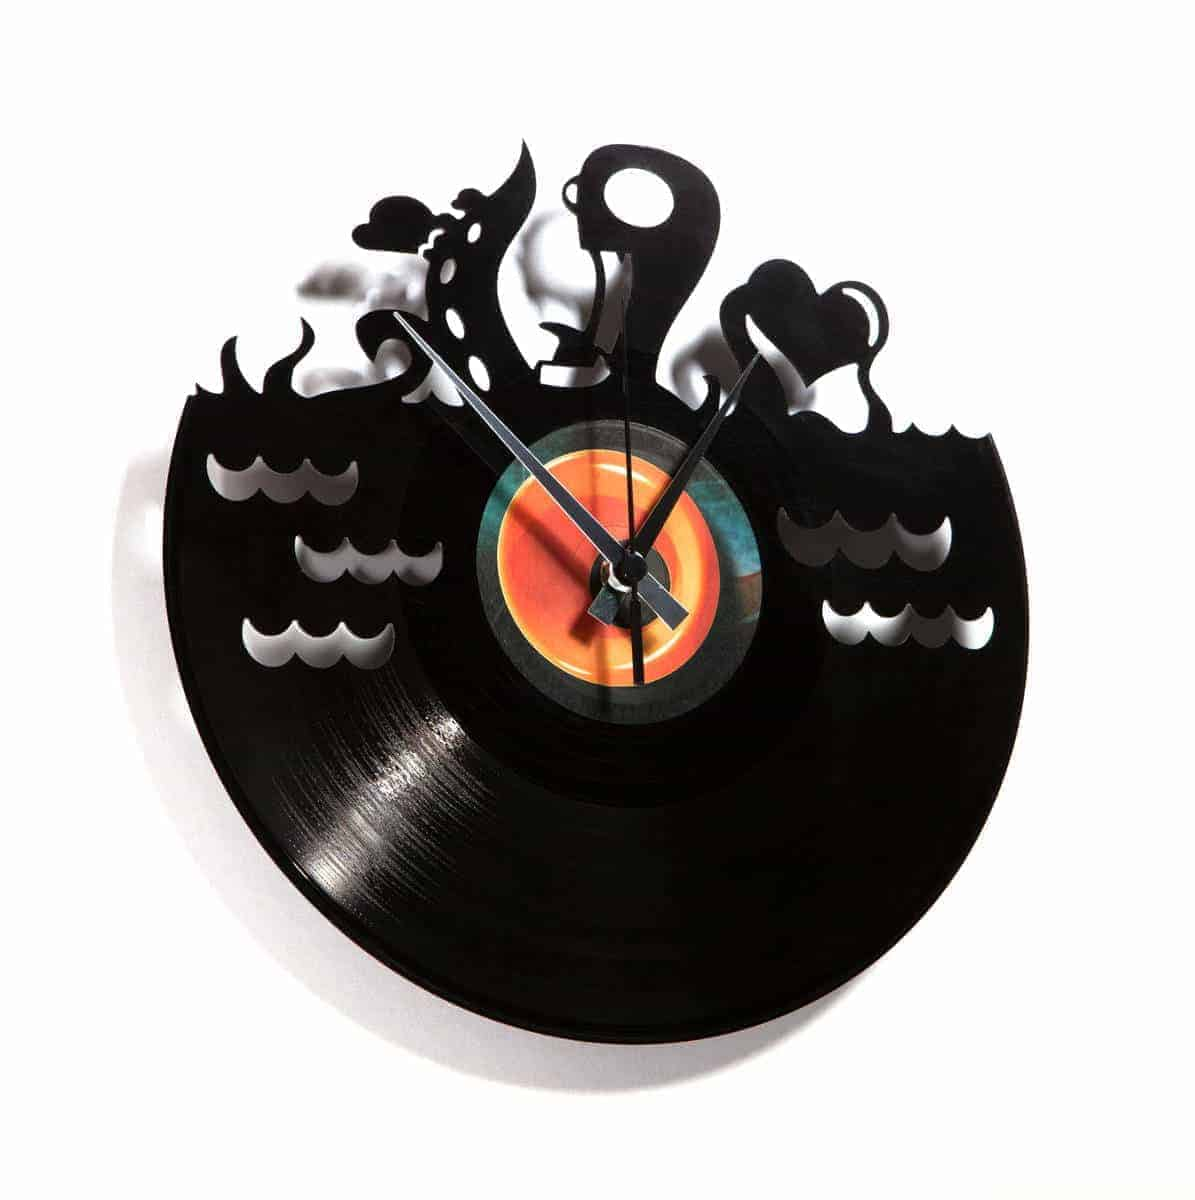 octopuss vinyl record clock